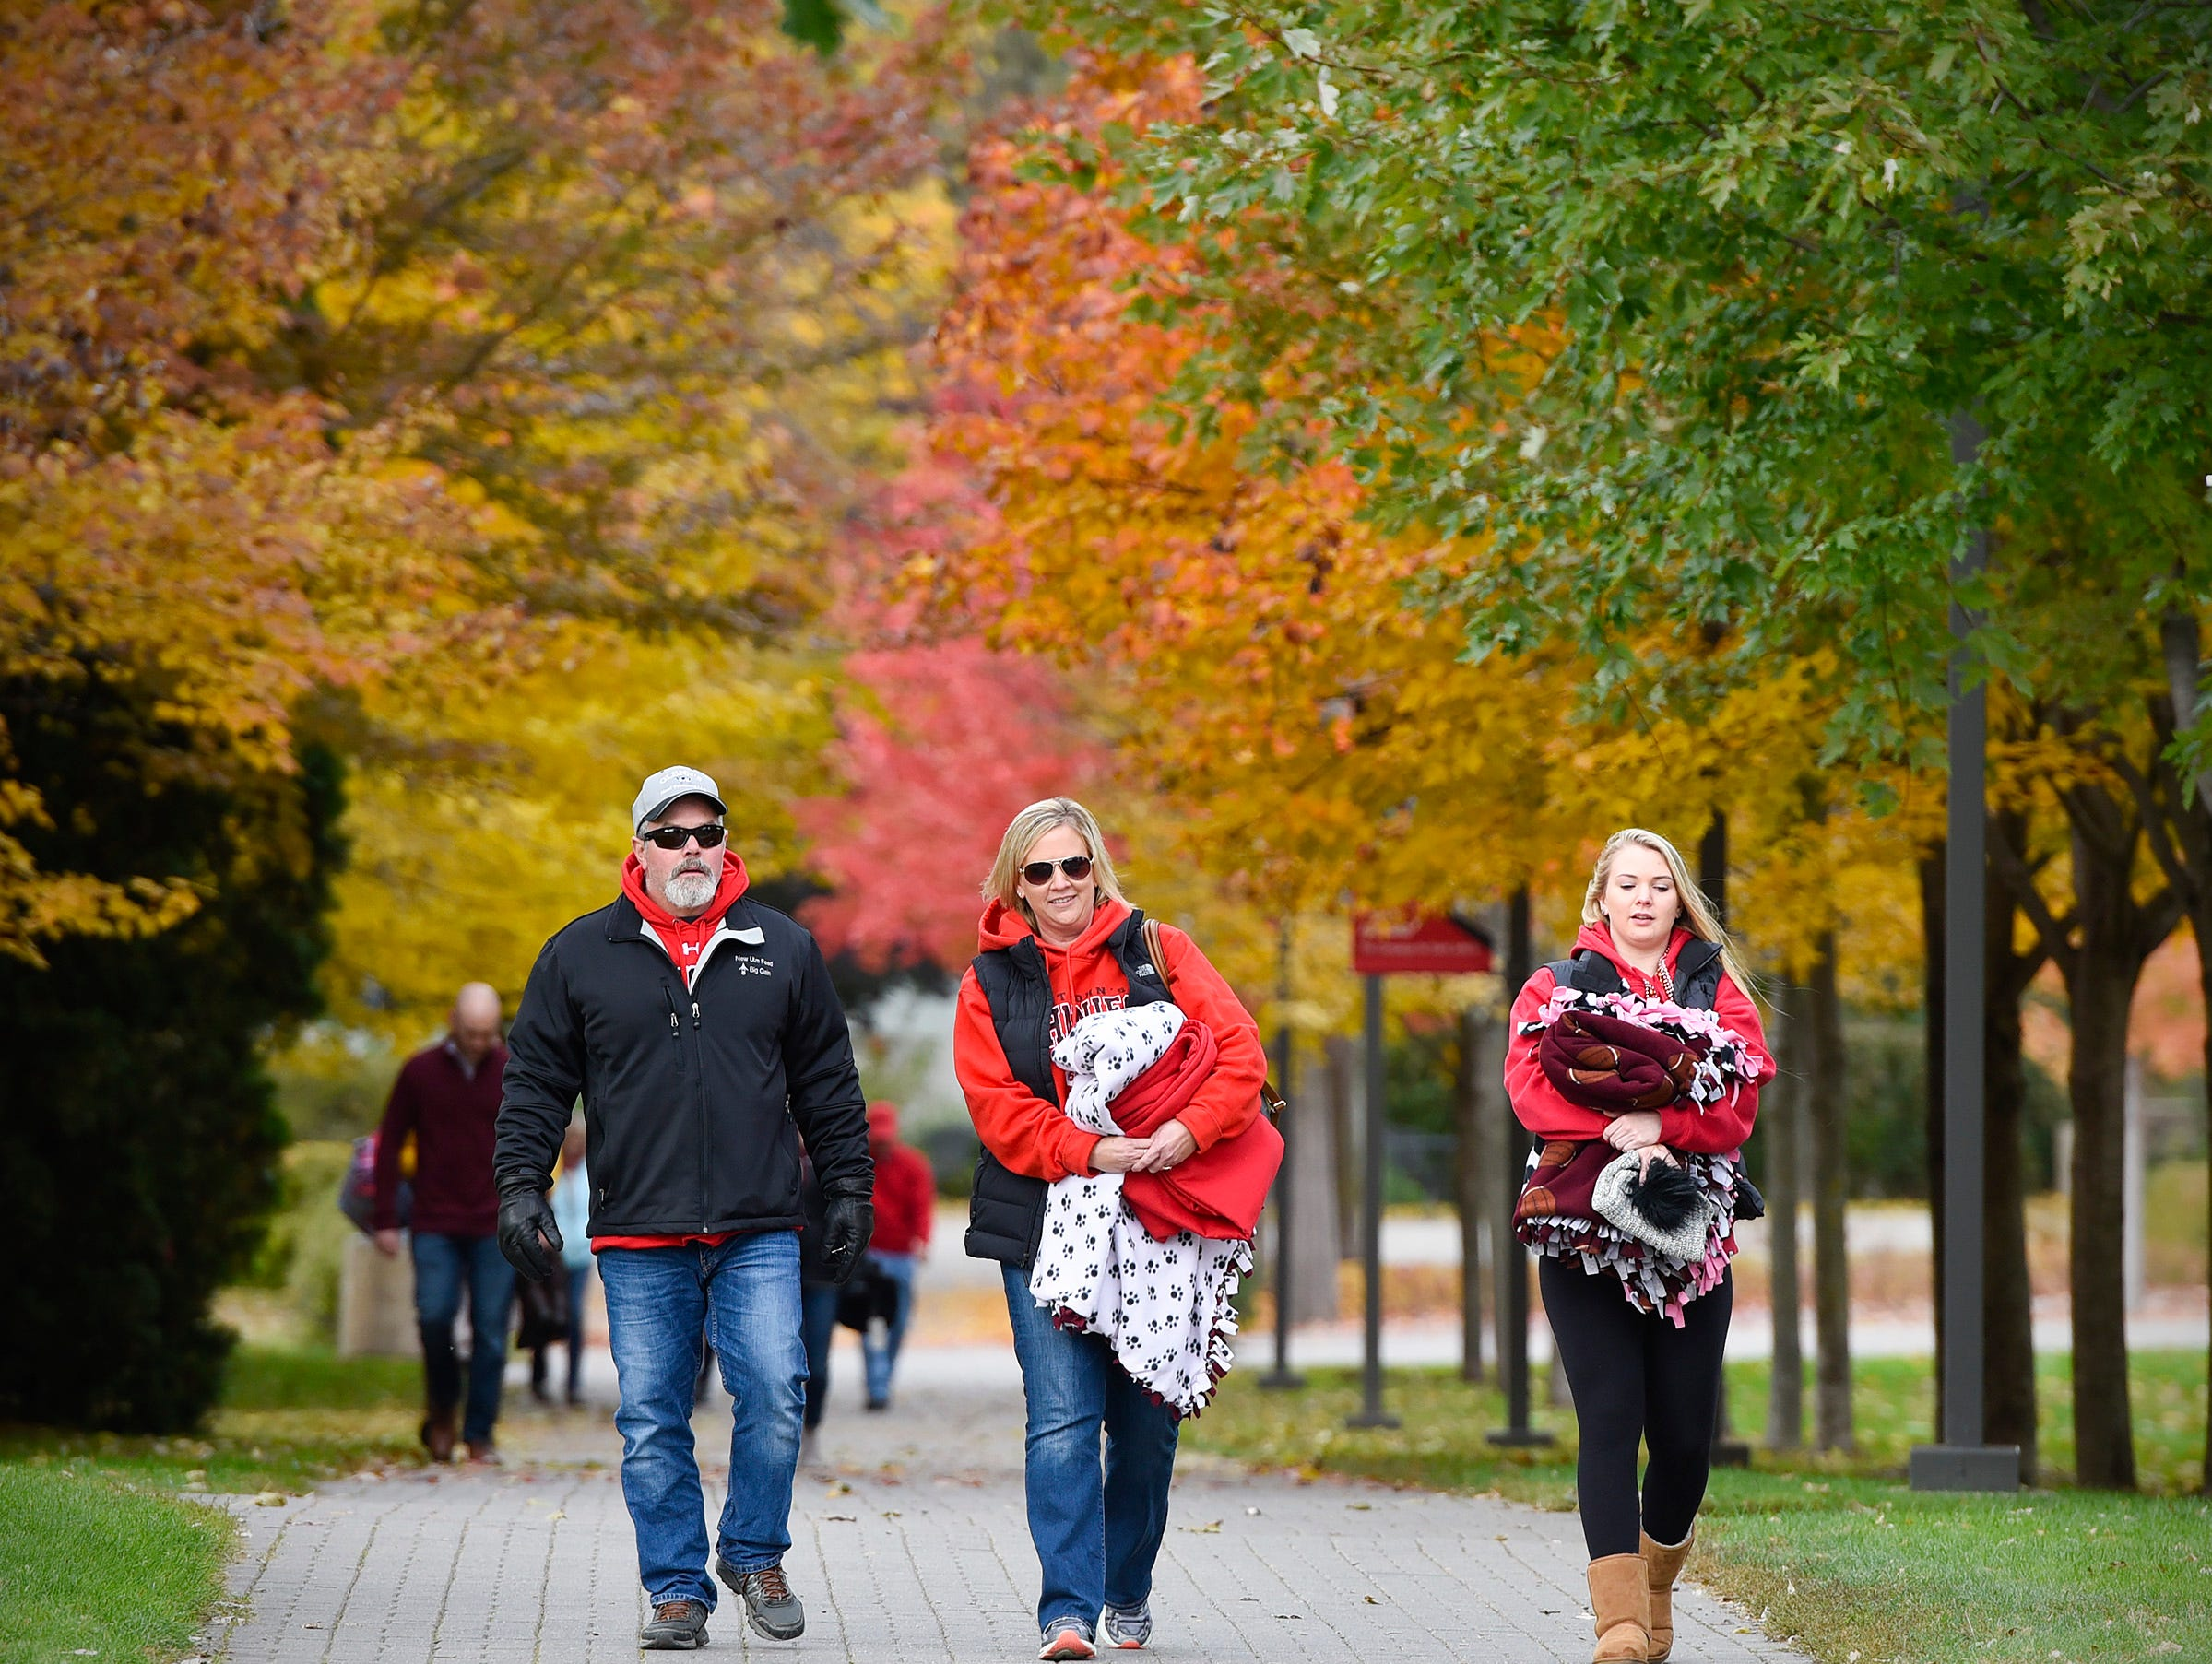 Fans walk through the colorful leaves on campus to get to the St. John's and St. Thomas game Saturday, Oct. 13, in Collegeville.